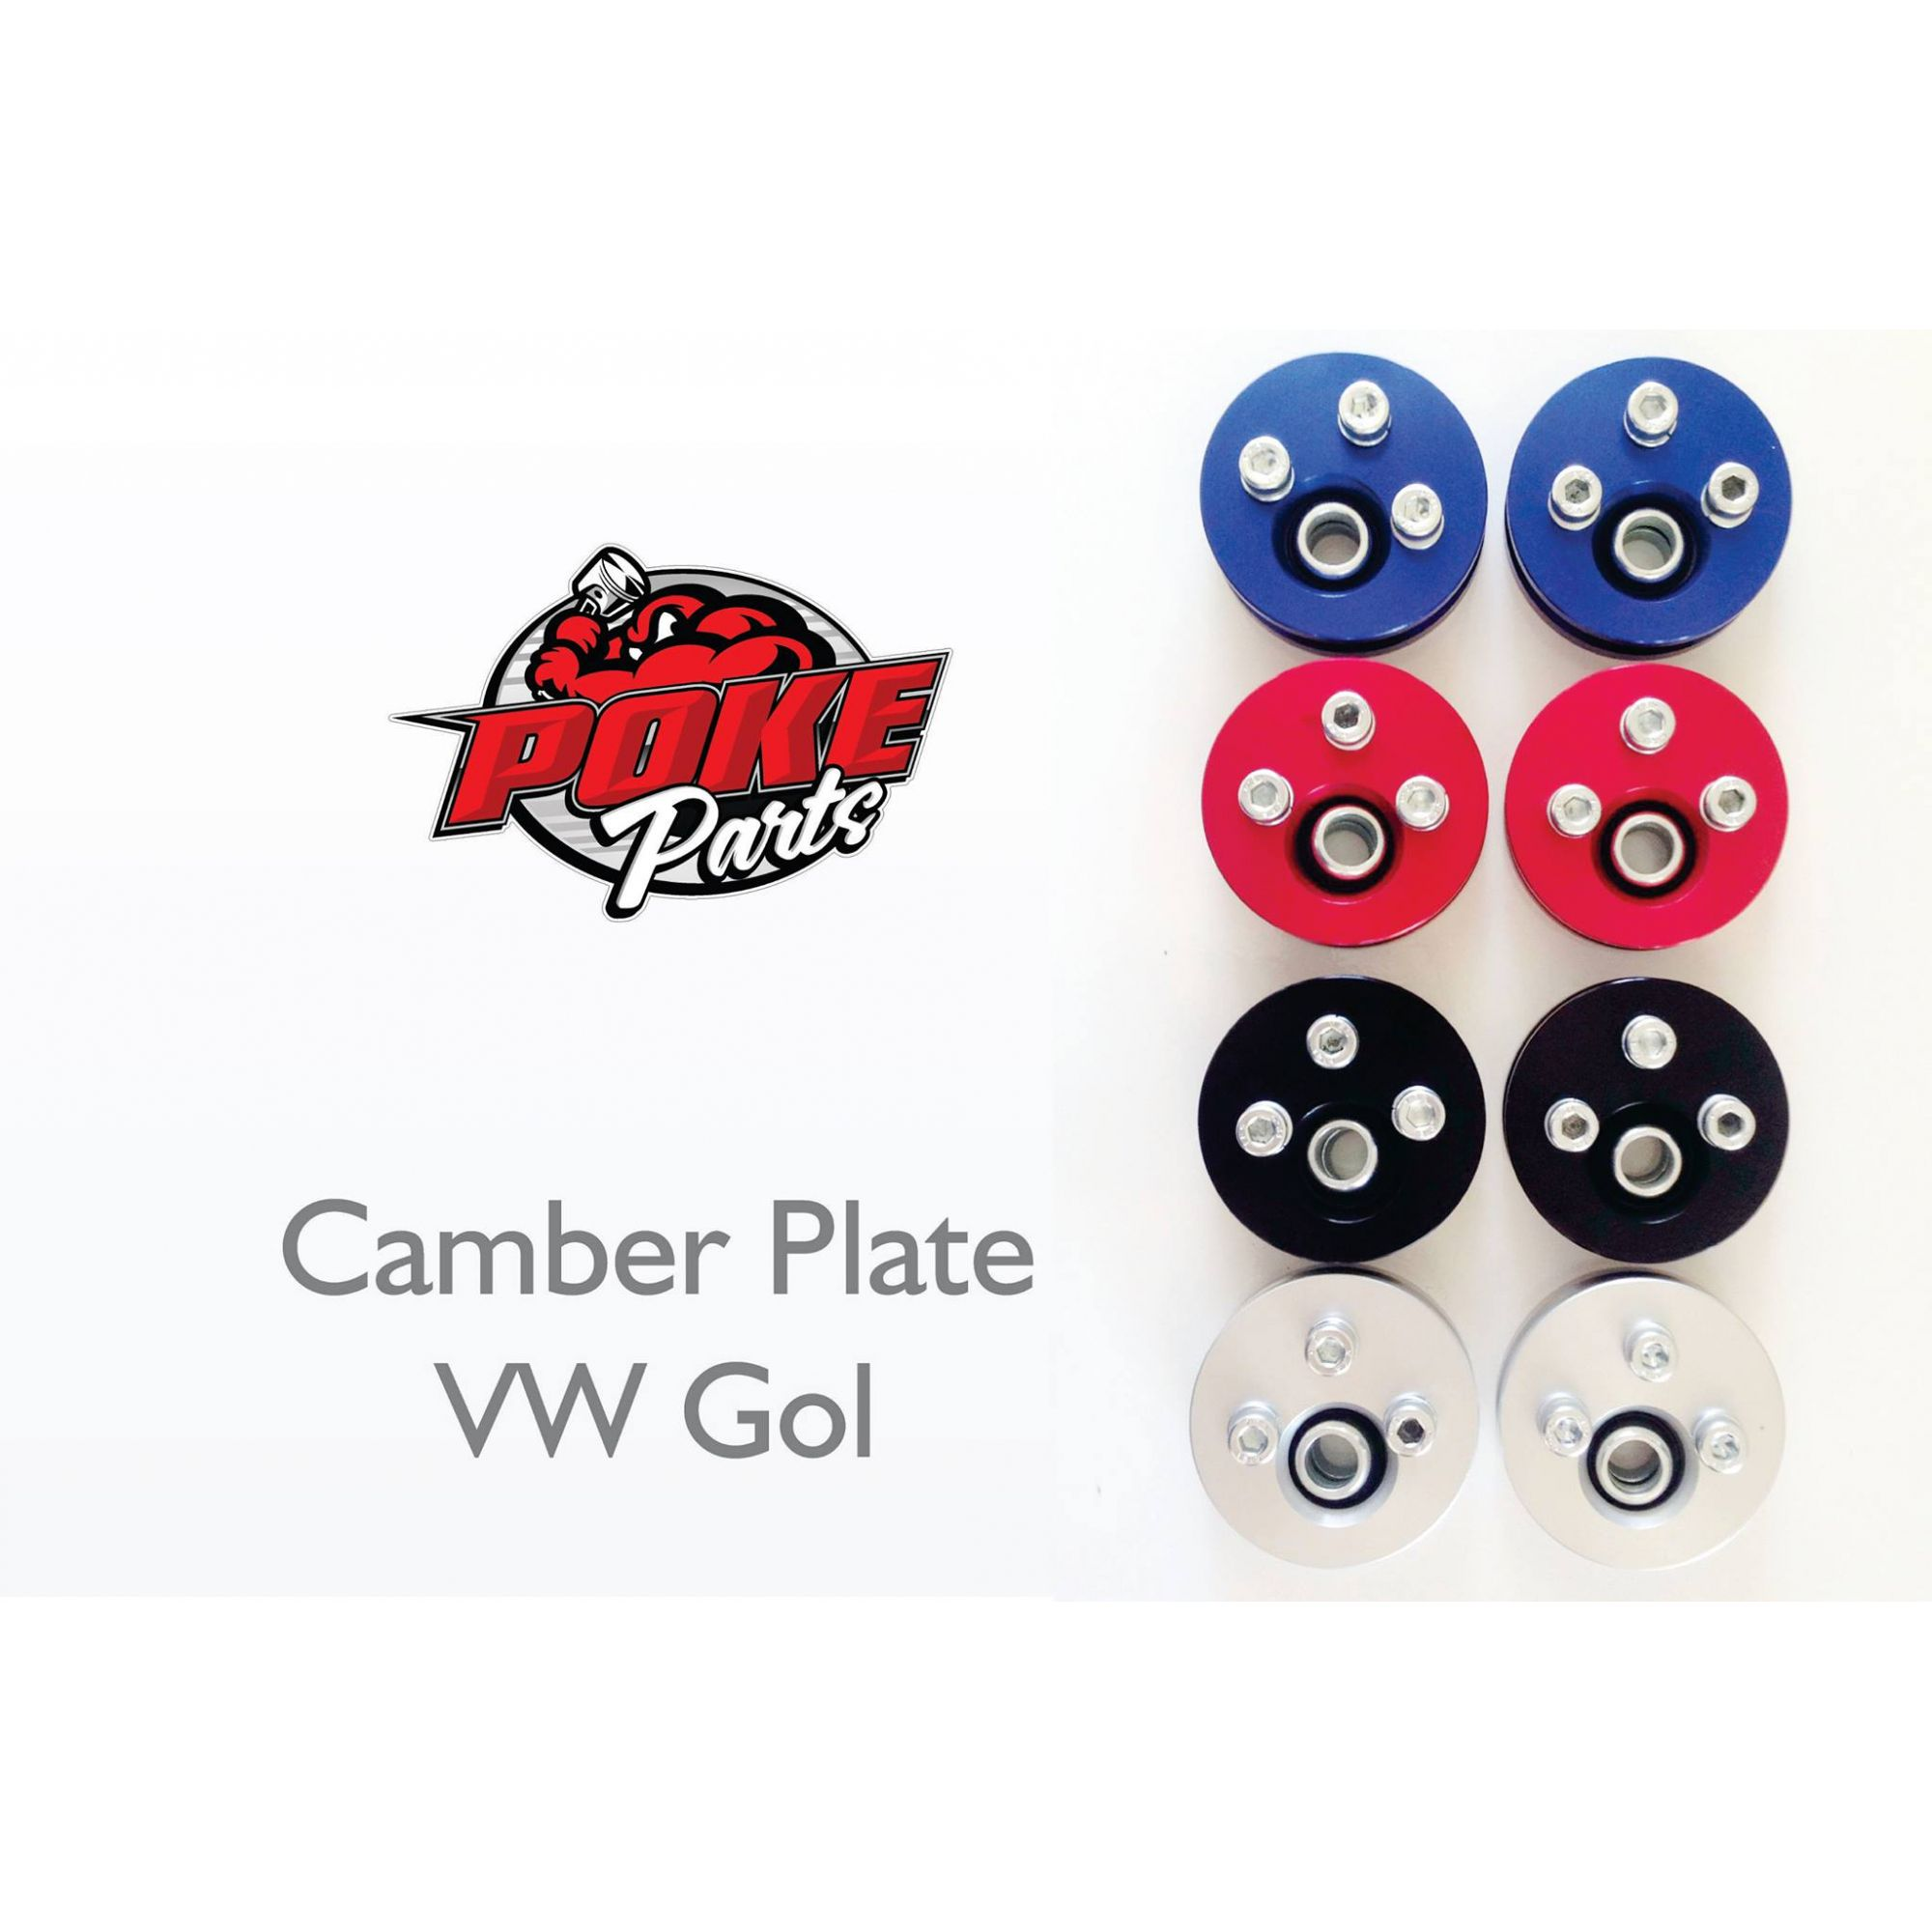 Kit Camber Plate Vw